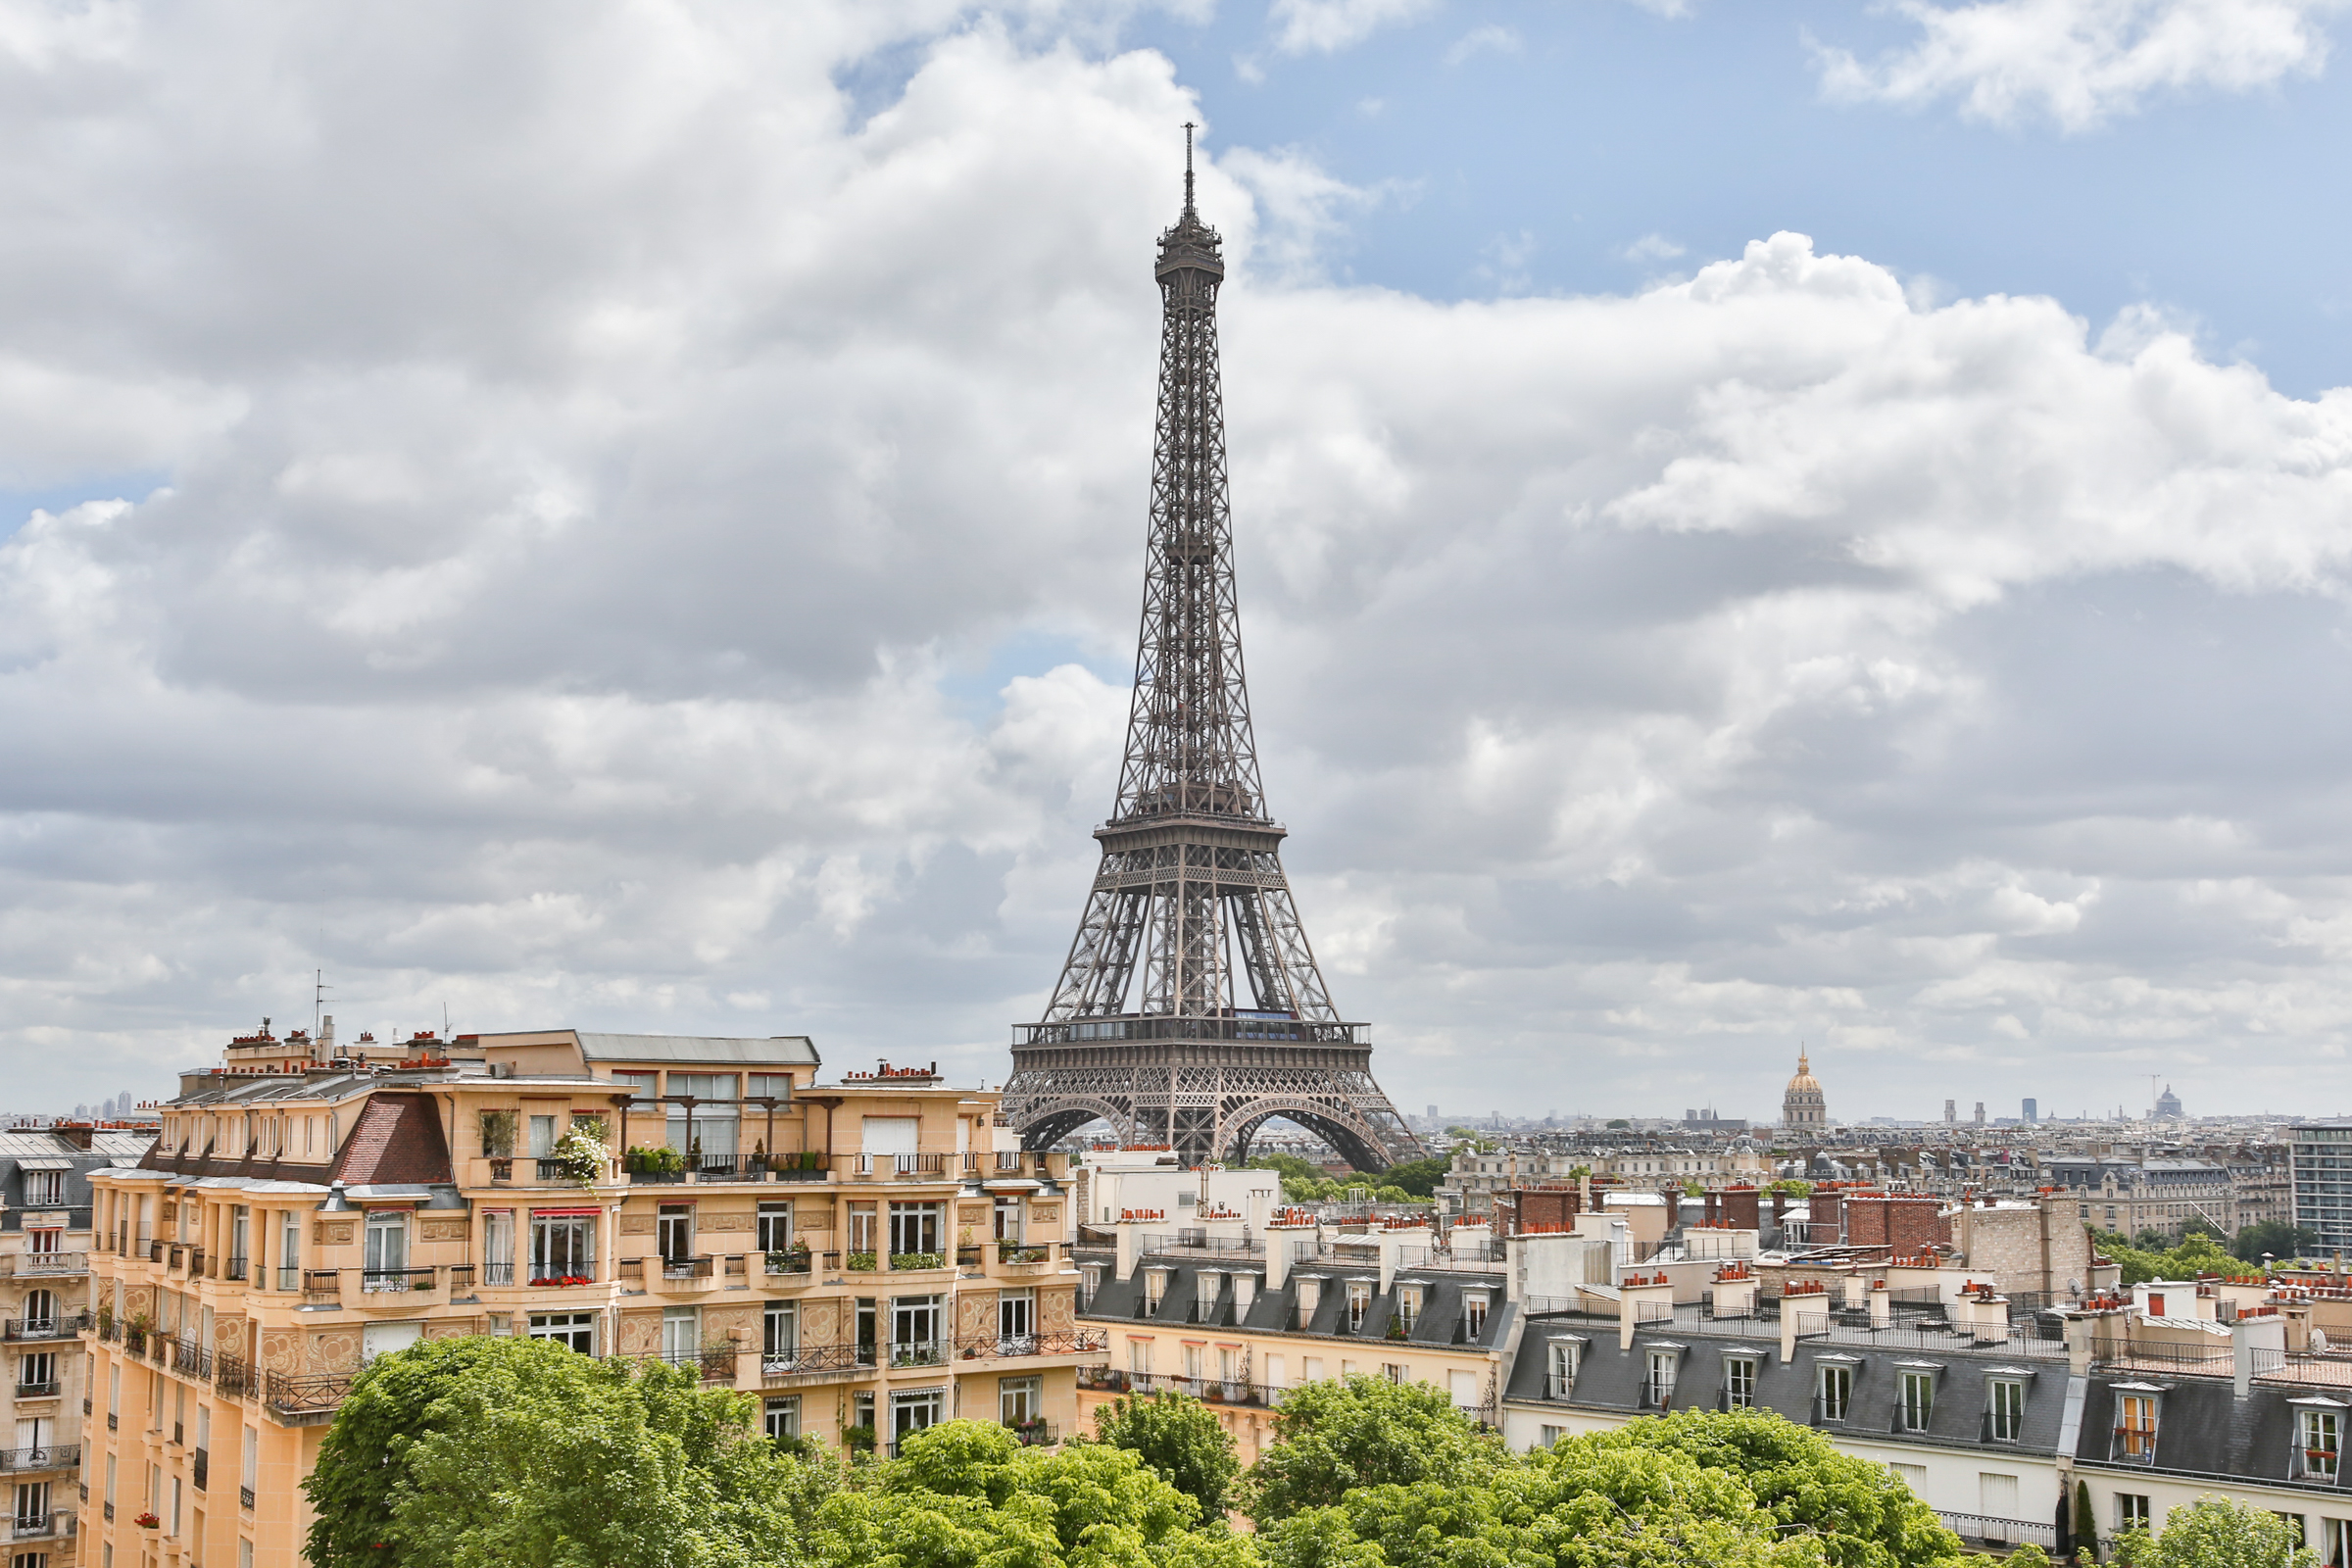 Property For Sale at Apartment with parisian monuments view - Passy Trocadero